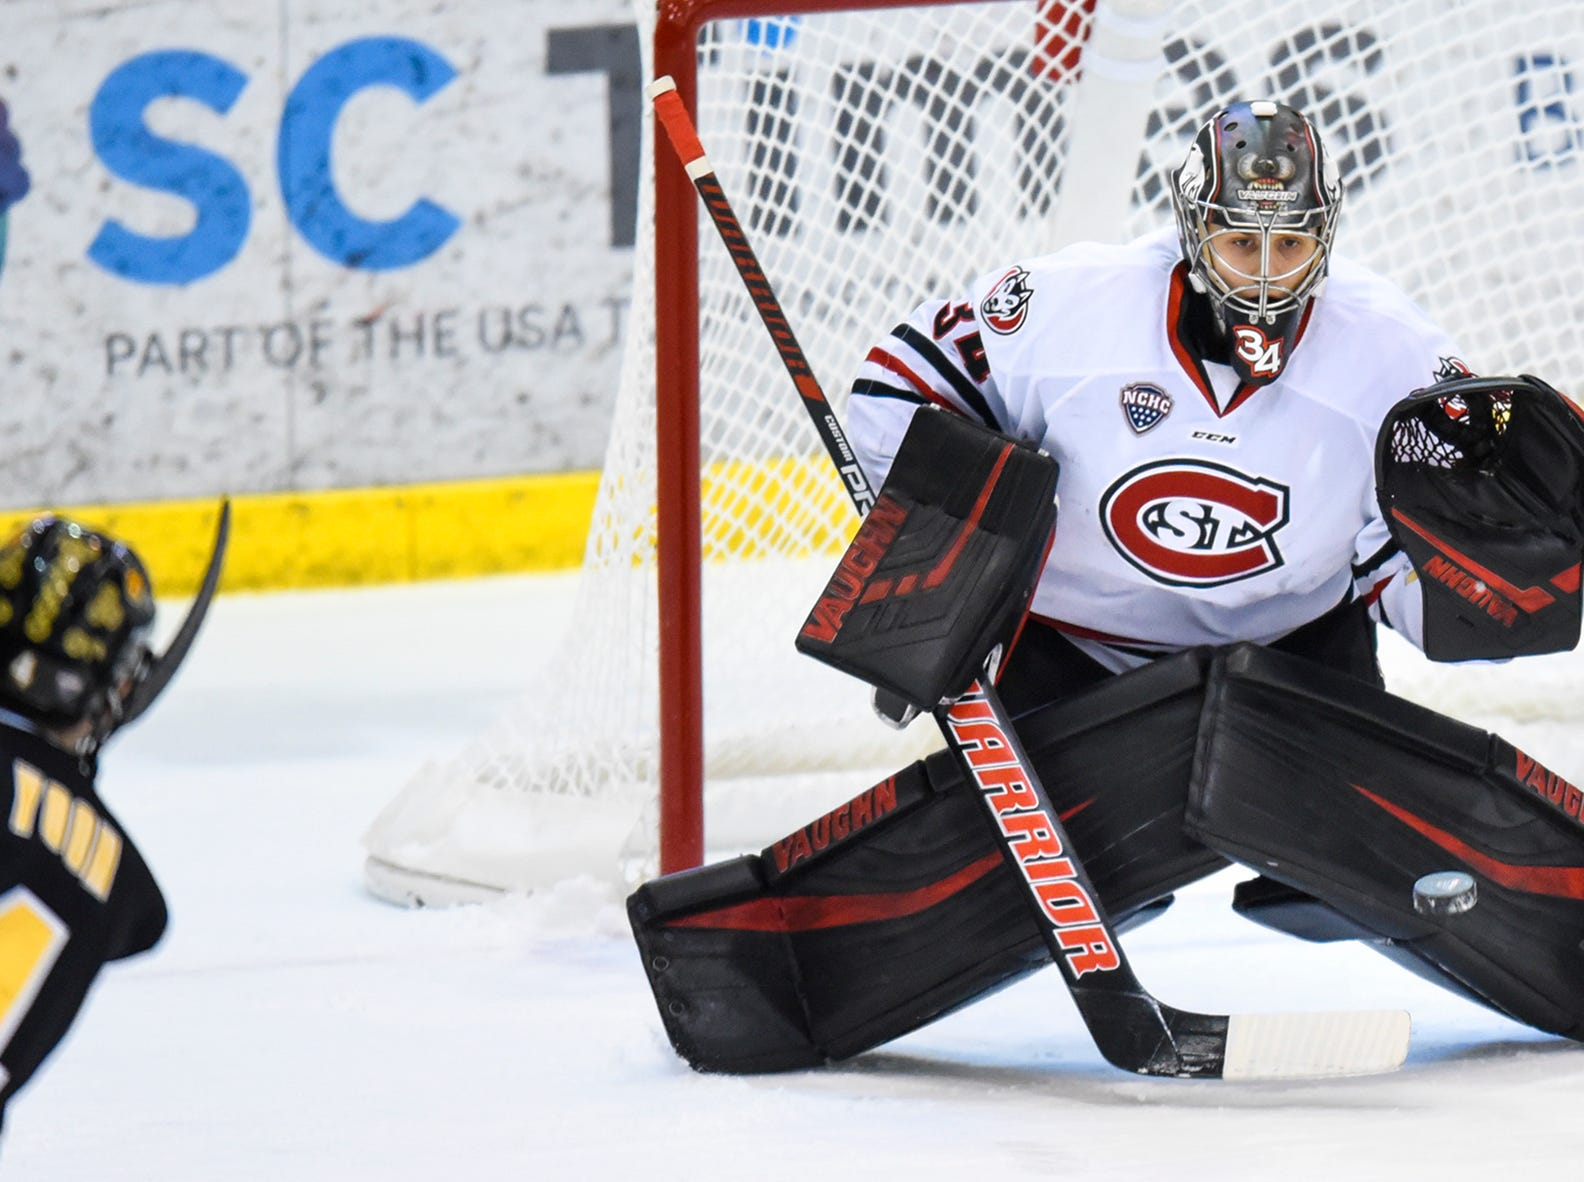 St. Cloud State goaltender David Hrenak concentrates on the puck during the first period of the Saturday, Feb. 9, game at the Herb Brooks National Hockey Center in St. Cloud.